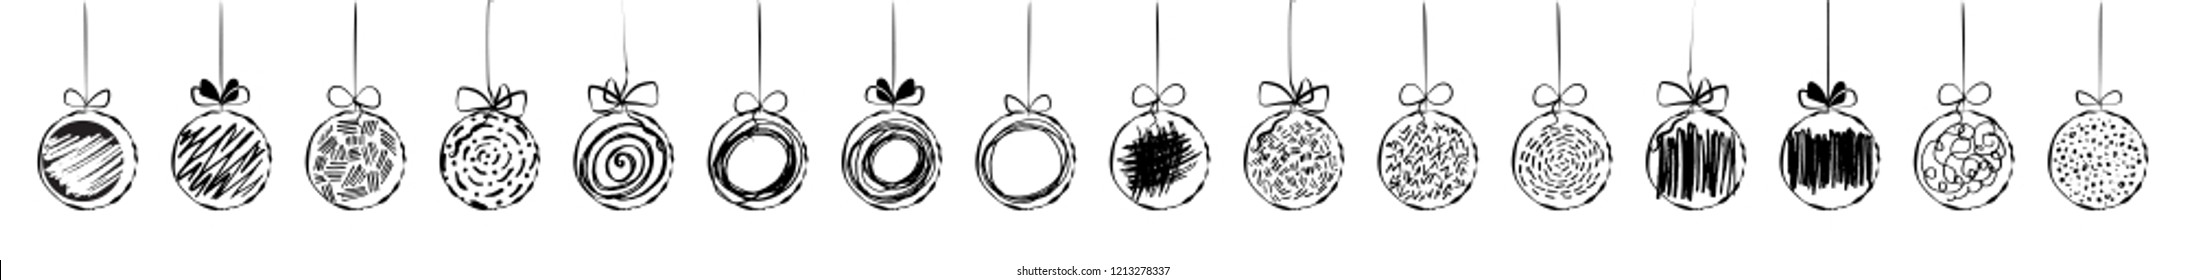 Hand drawn christmas ball collection isolated on white background. New Year vector balls sketch, ink doodle xmas bauble icons or holiday toys engraving illustration